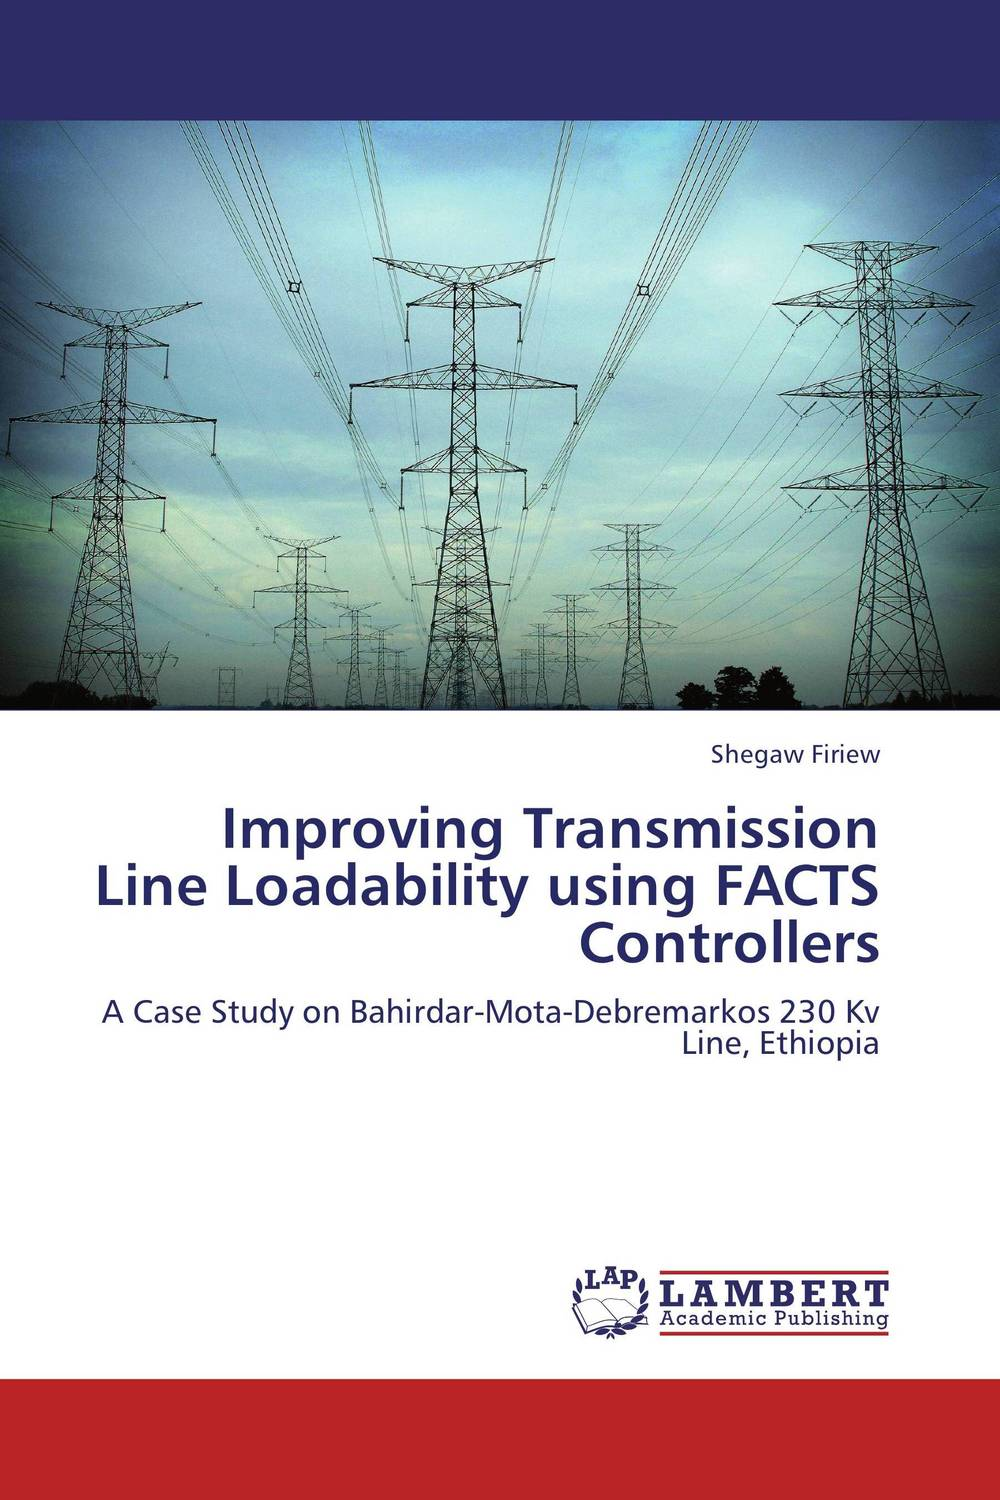 Improving Transmission Line Loadability using FACTS Controllers timothy jury cash flow analysis and forecasting the definitive guide to understanding and using published cash flow data